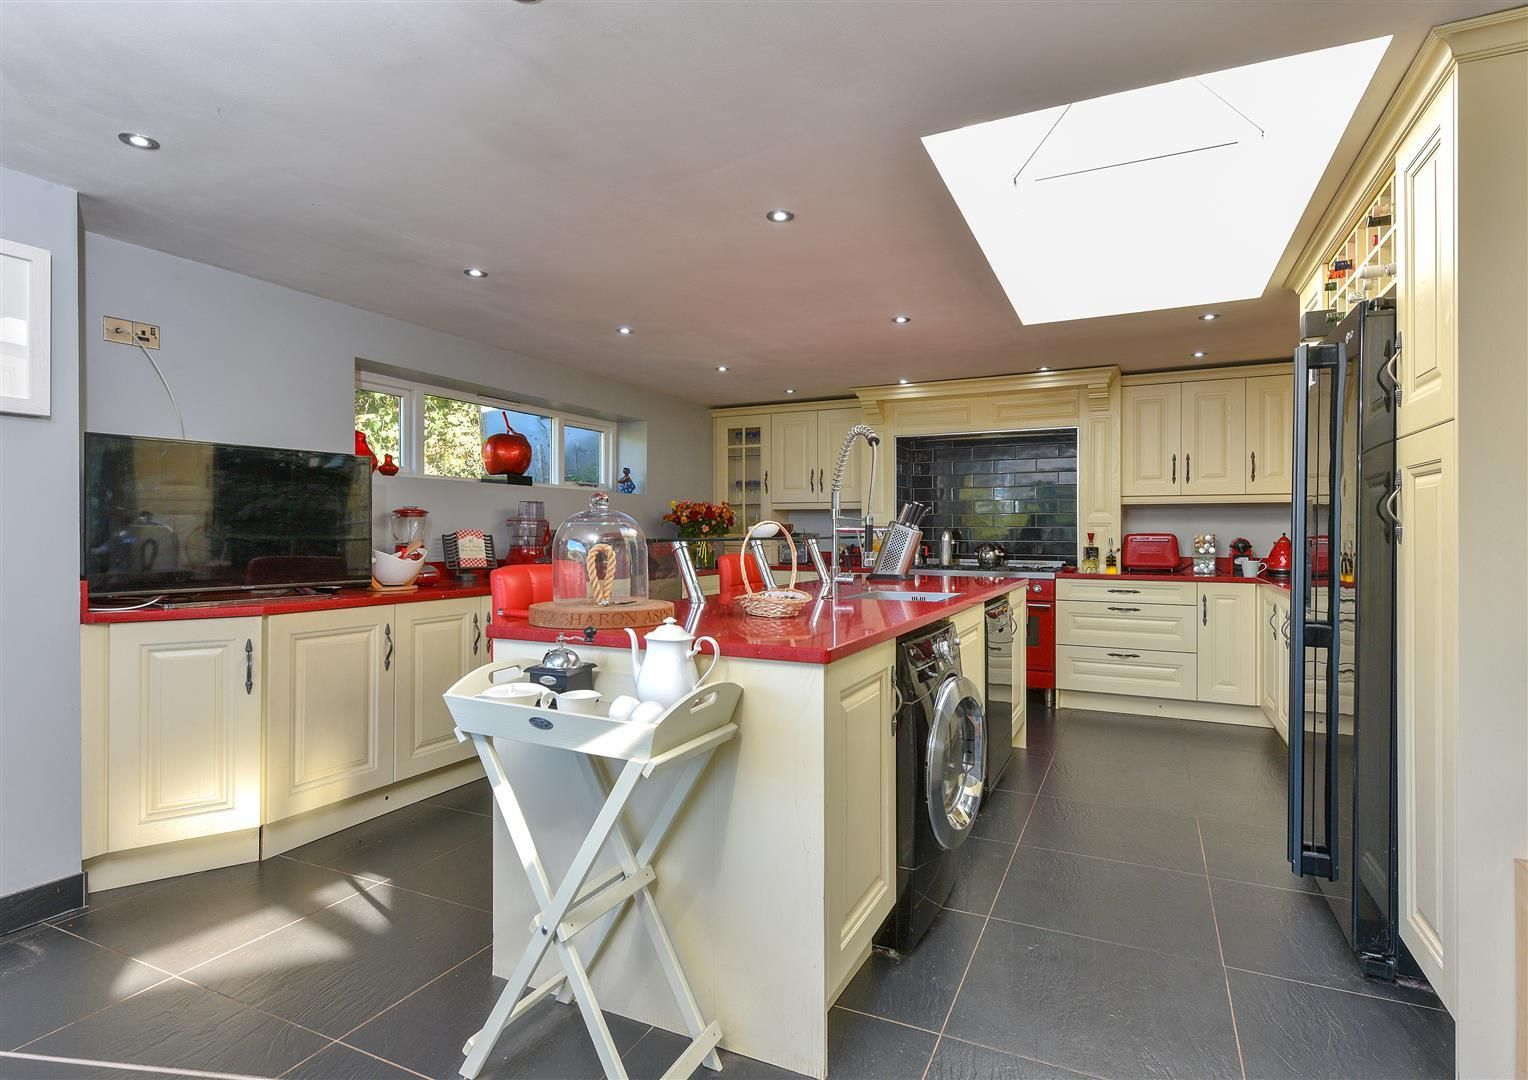 4 bed house for sale in Clent 12